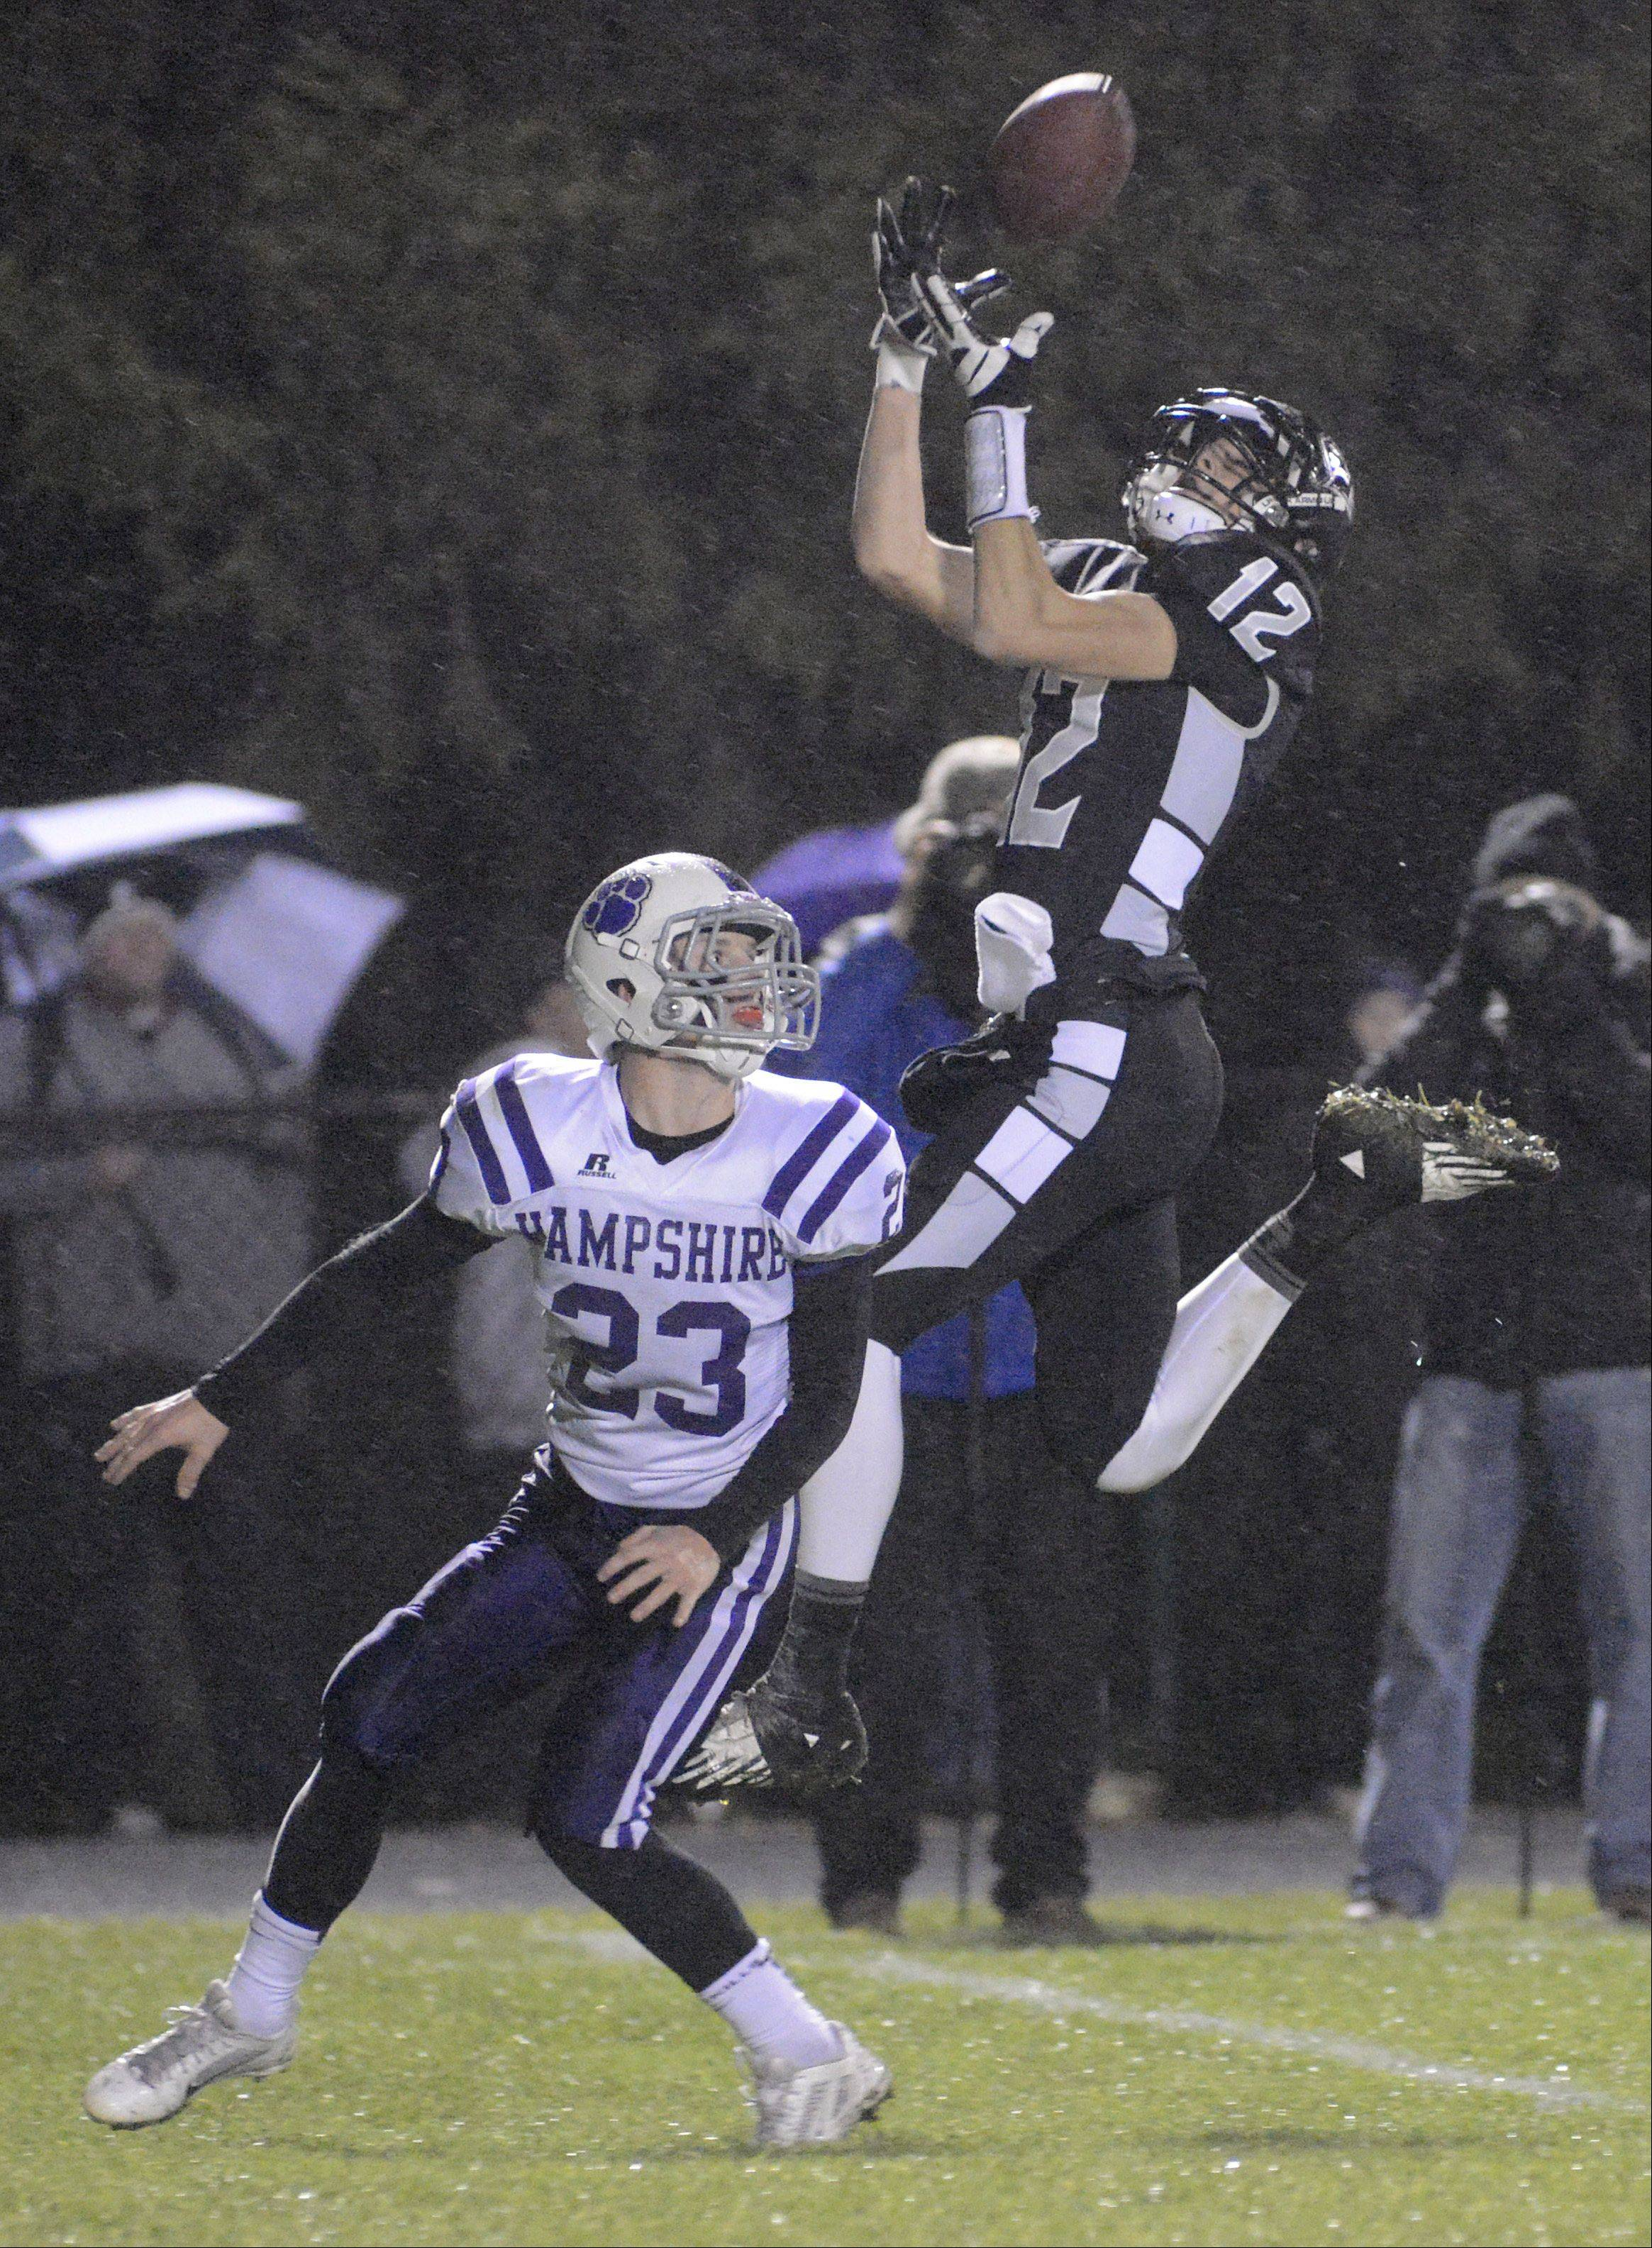 Kaneland's John Pruett leaps to complete a pass over Hampshire's Trey Schramm during Friday's football game.